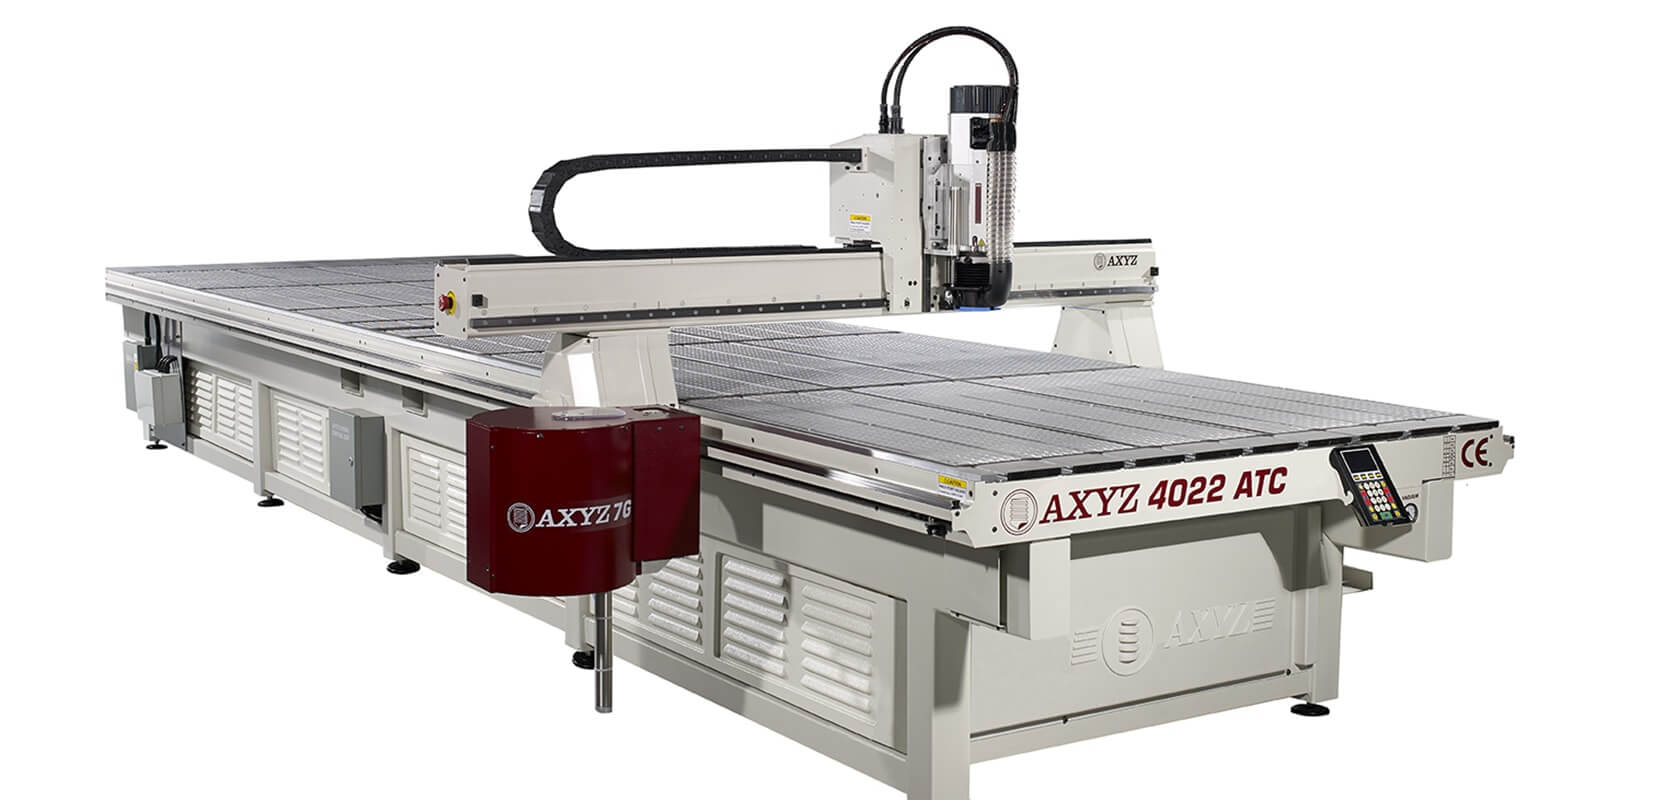 Used Cnc Router >> AXYZ router increases production by 50 per cent at bed manufacturer